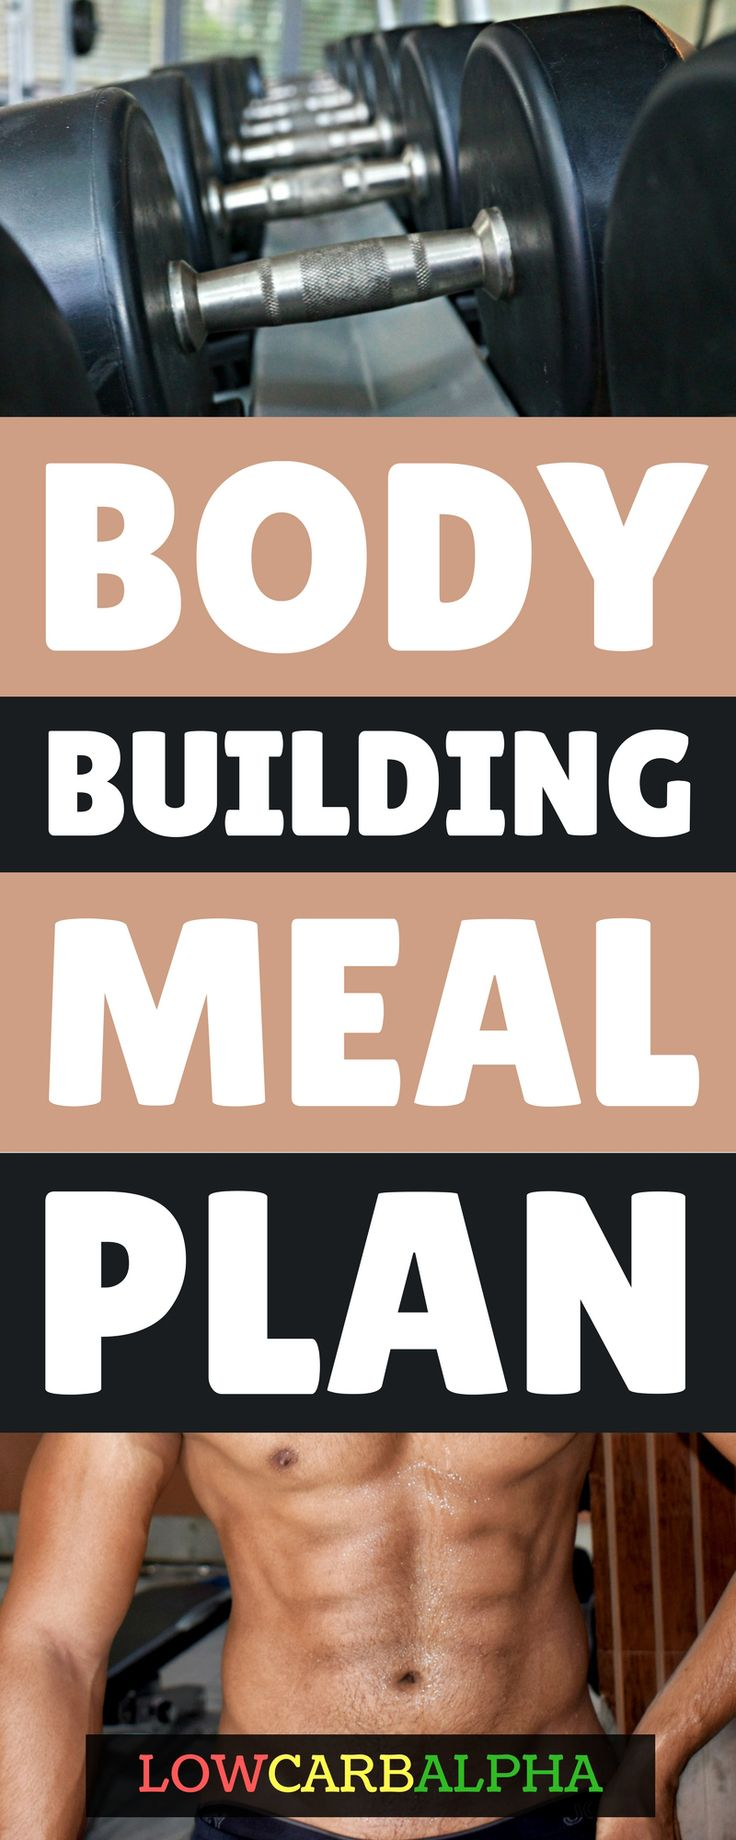 body building meal plan https://lowcarbalpha.com/bodybuilding-meal-plan-beginners/ what to eat when exercising with lifting weights #lowcarb #keto #bodybuilding #lowcarbalpha